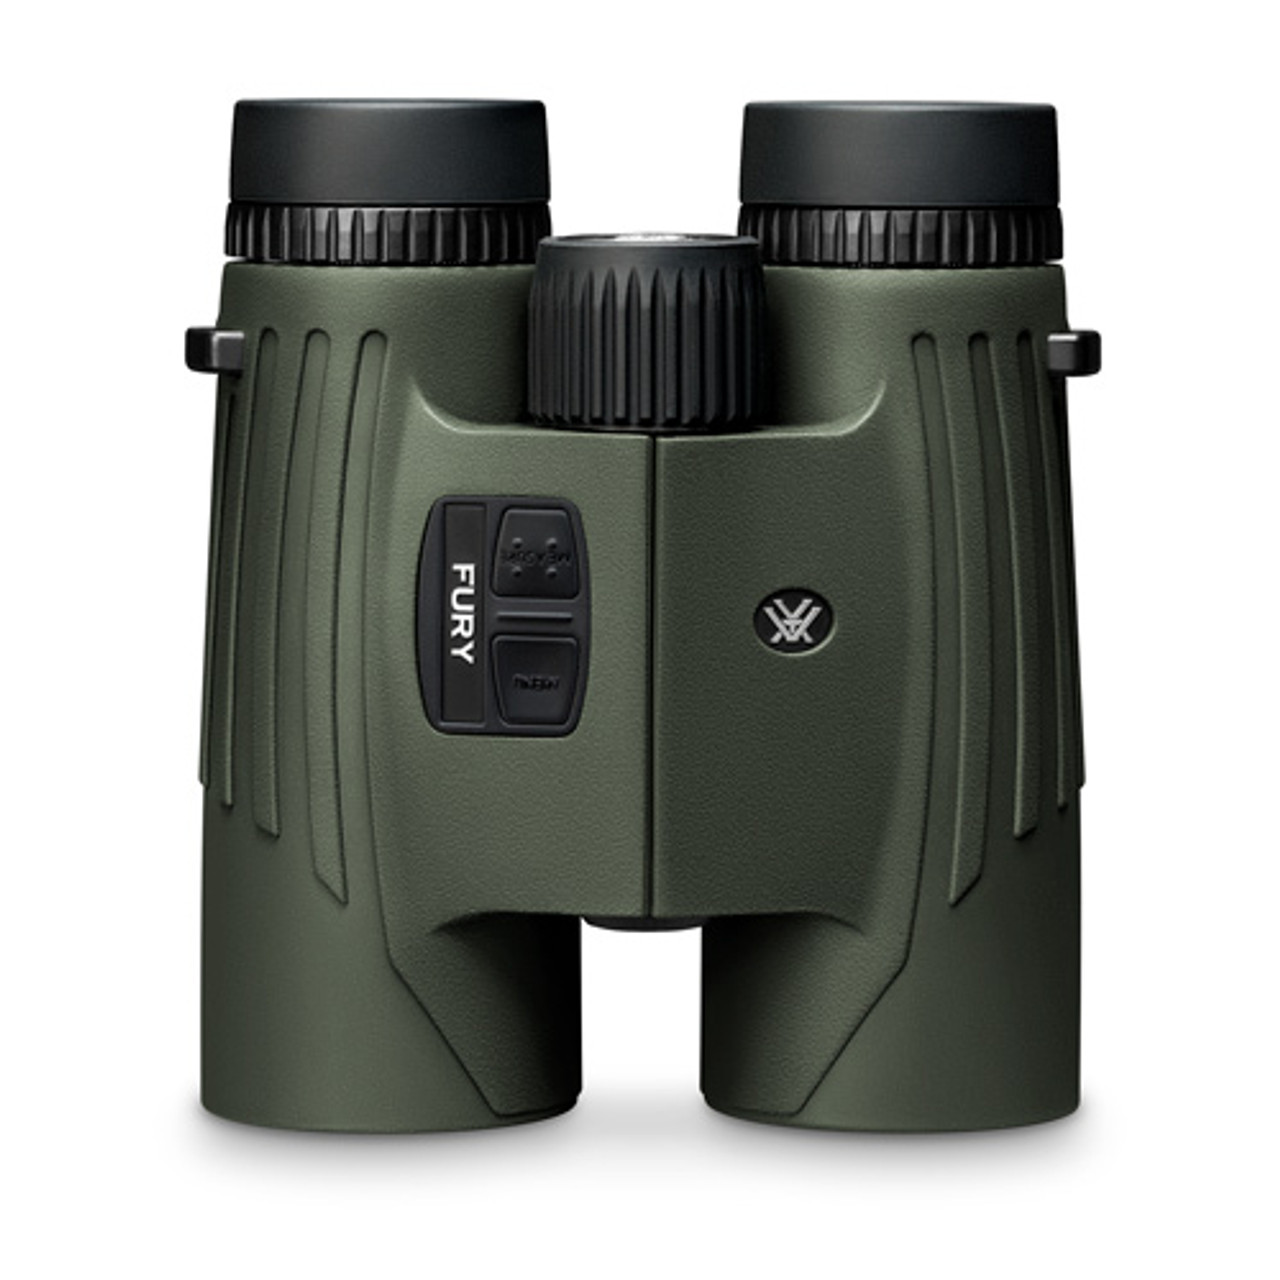 High quality optics and long-distance ranging capability come together in our all-new Vortex Fury™ HD 5000 10x42 Laser Rangefinding Binocular.